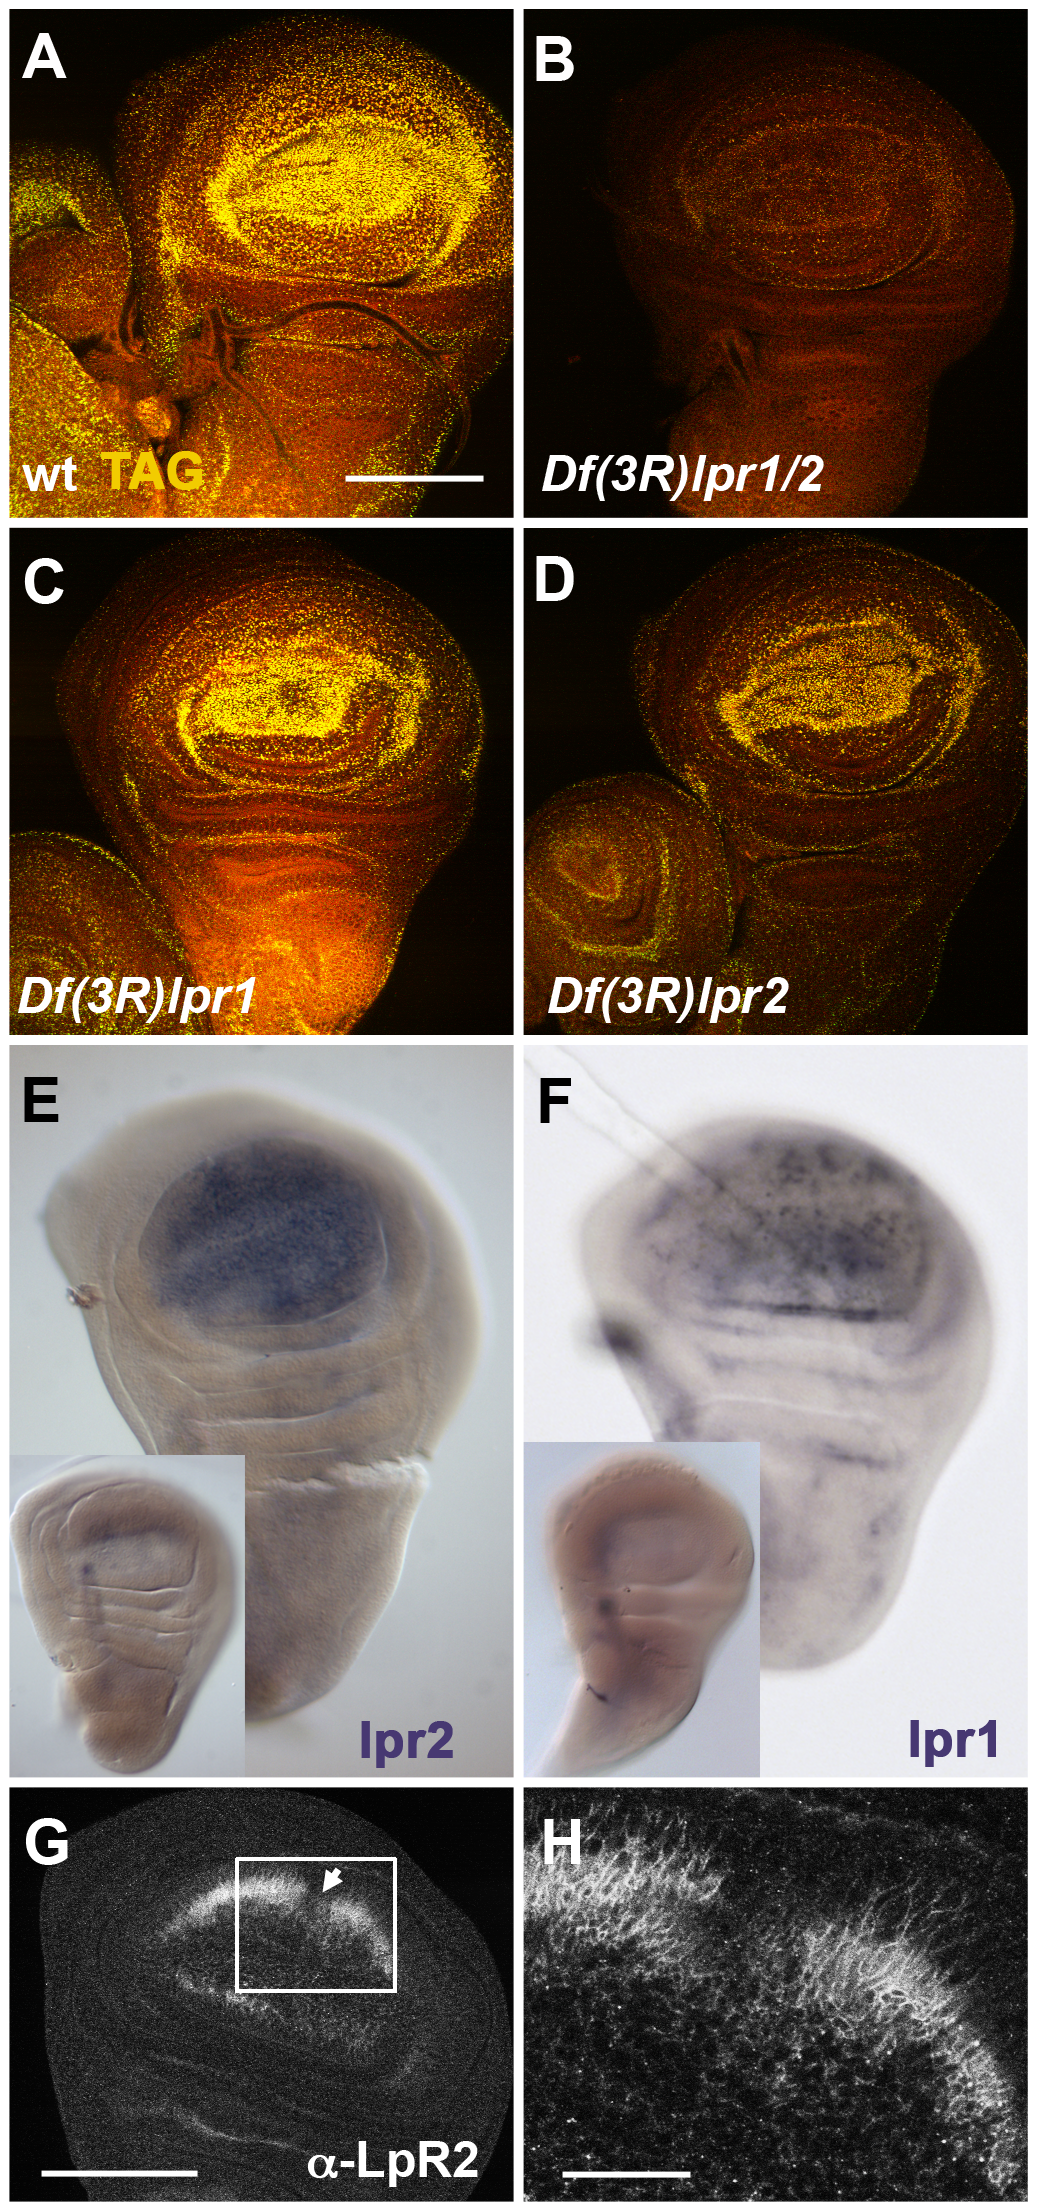 <i>lpr1</i> and <i>lpr2</i> are required for the uptake of neutral lipids by wing imaginal disc cells.